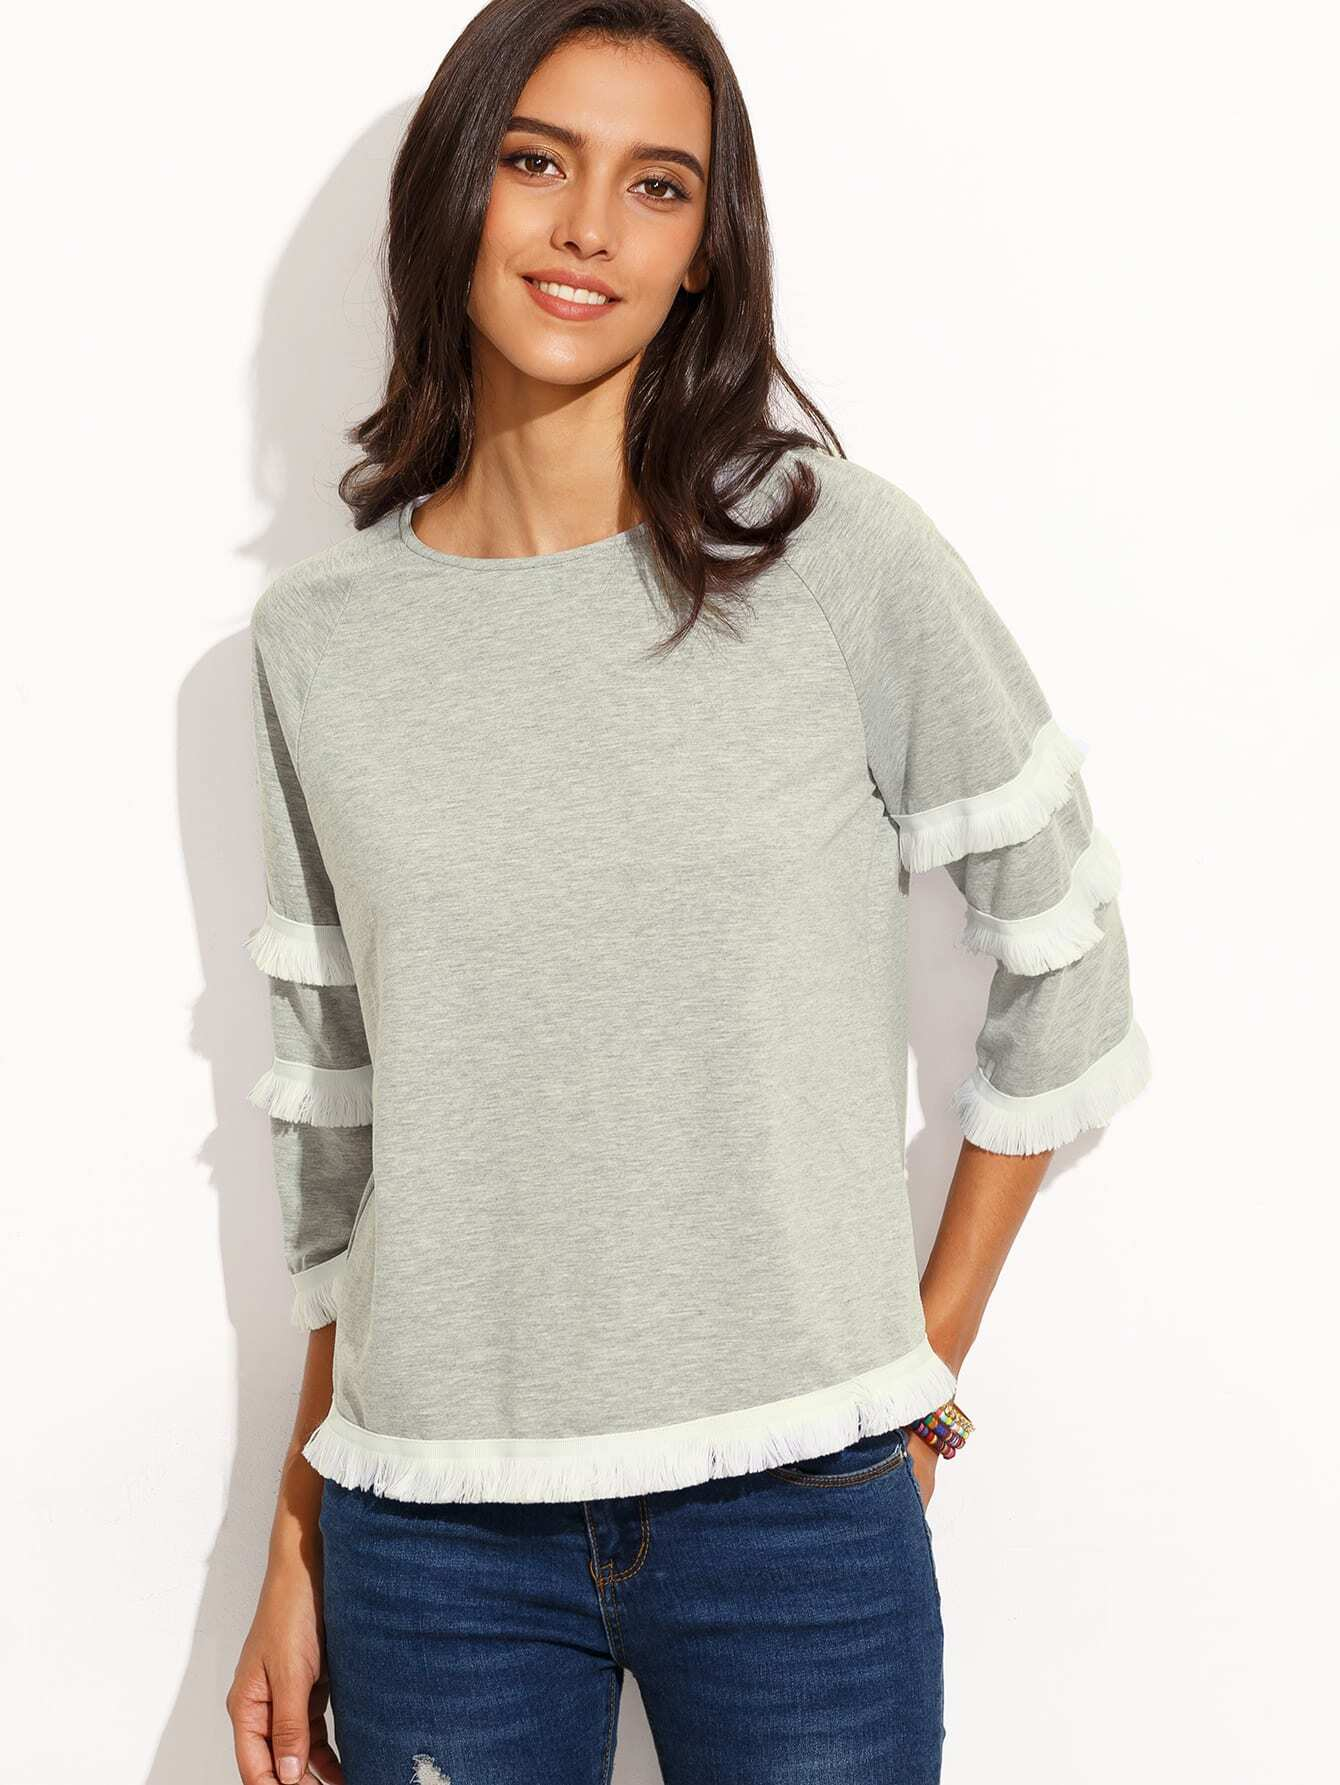 Heather Grey Raglan Sleeve Fringe Trim Detail Sweatshirt